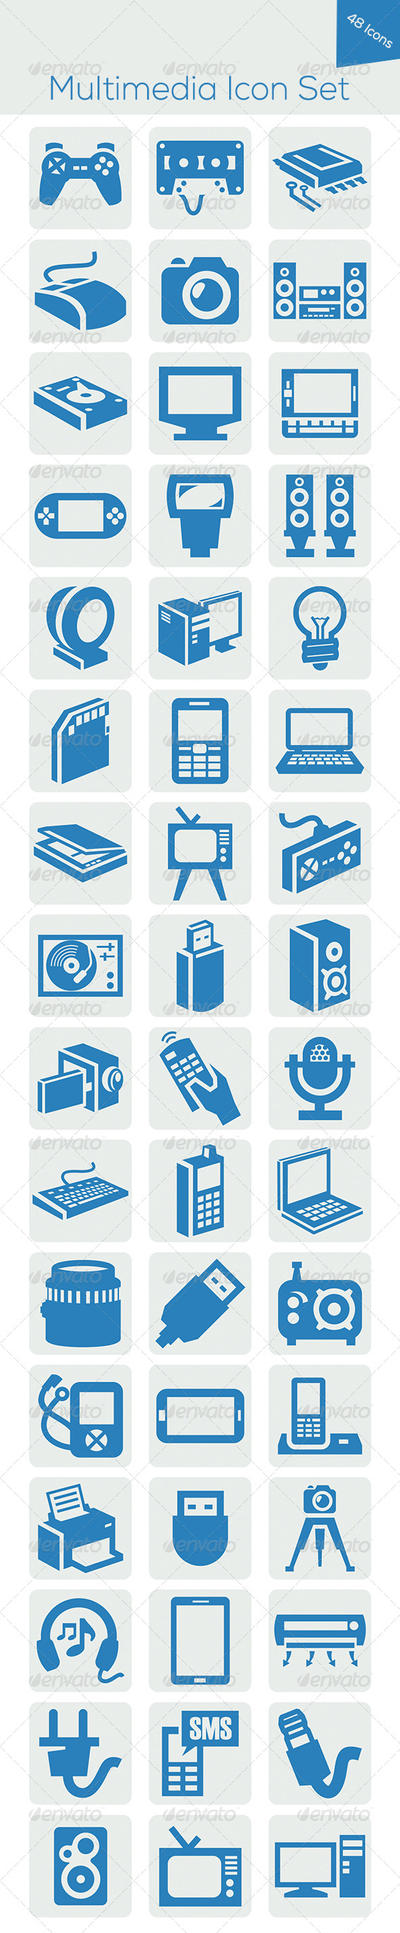 Multimedia Icon Set by hanifharoon